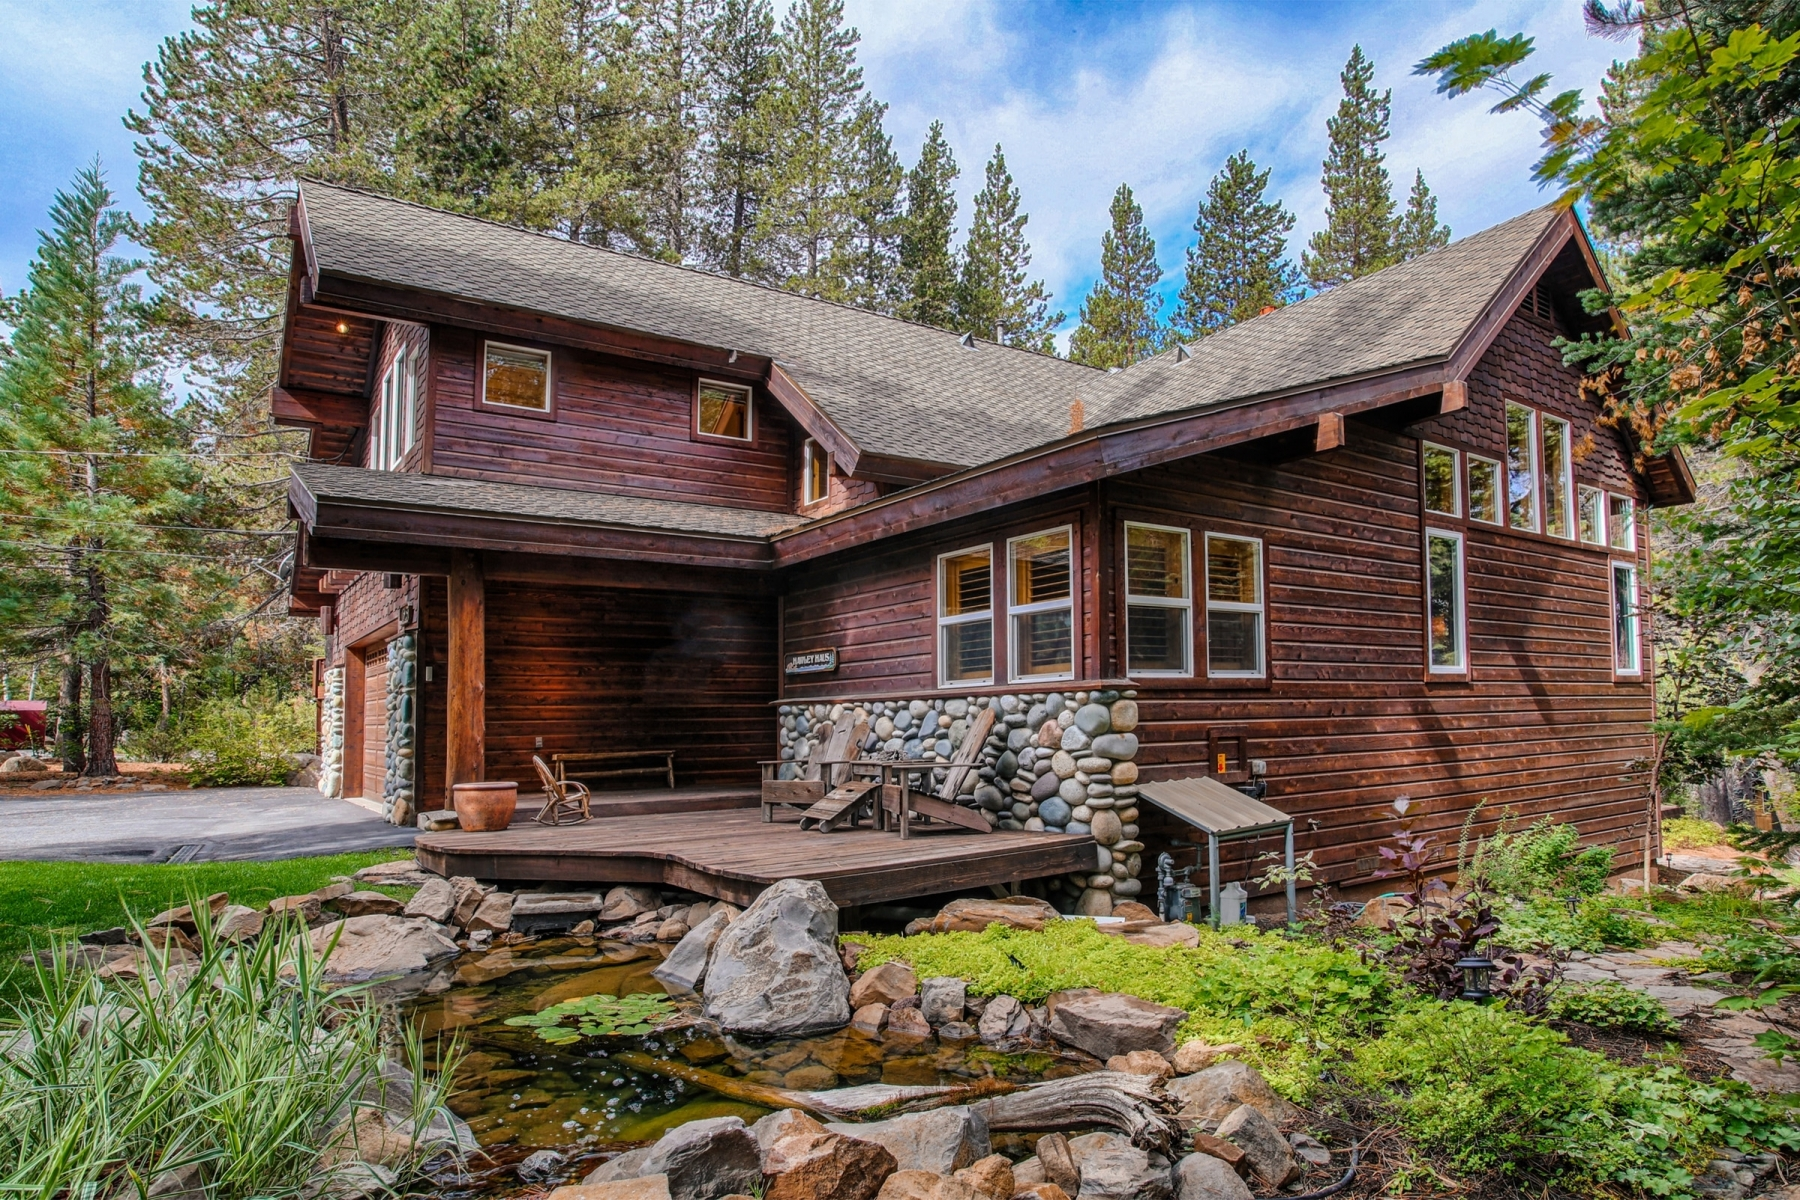 Single Family Home for Active at 15187 Swiss Lane Truckee California, 96161 15187 Swiss Lane Truckee, California 96161 United States